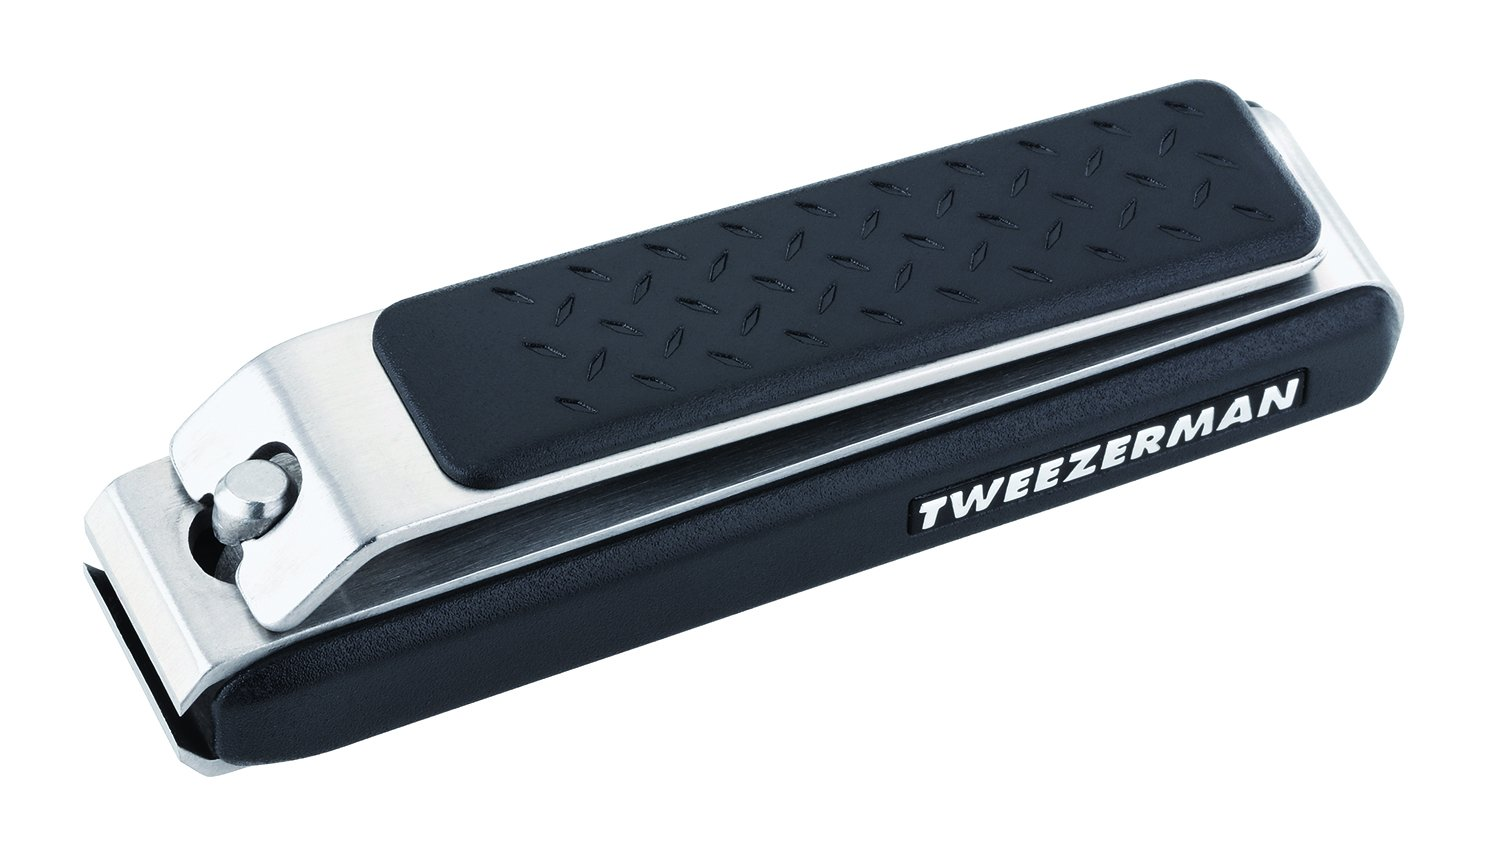 Tweezerman G.E.A.R. Precision Grip Toenail Clipper